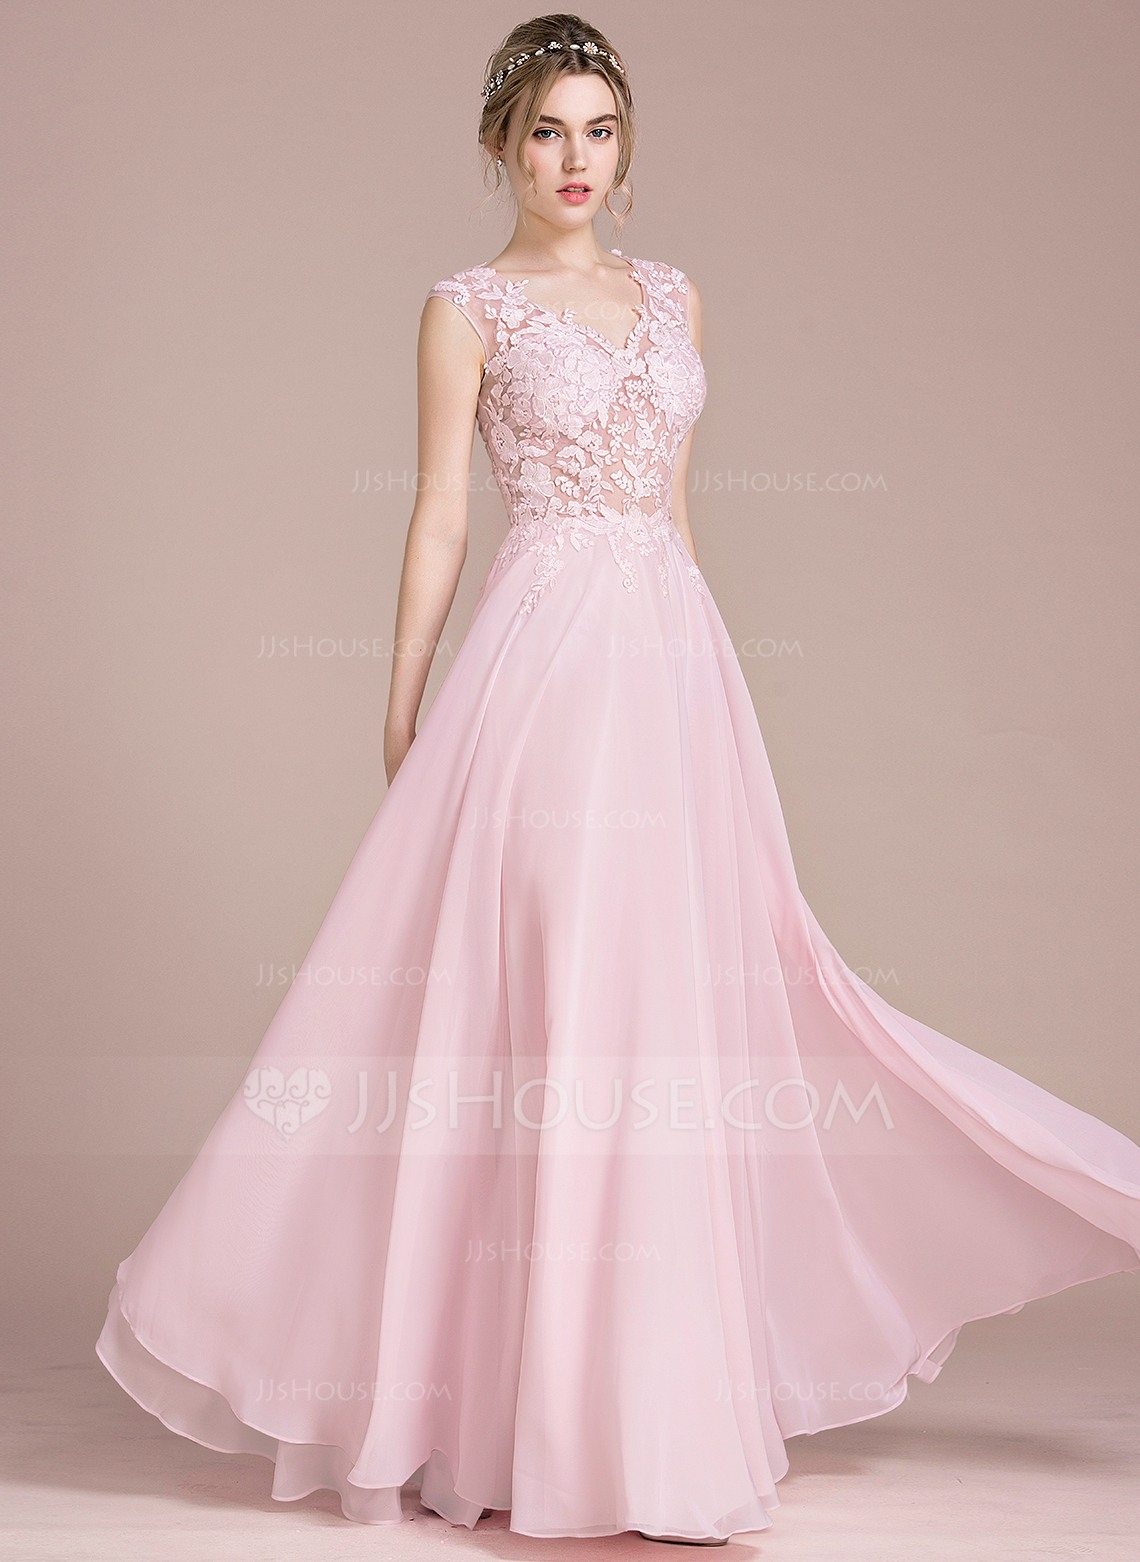 Formal Genial Abiball Kleid VertriebFormal Luxurius Abiball Kleid Ärmel